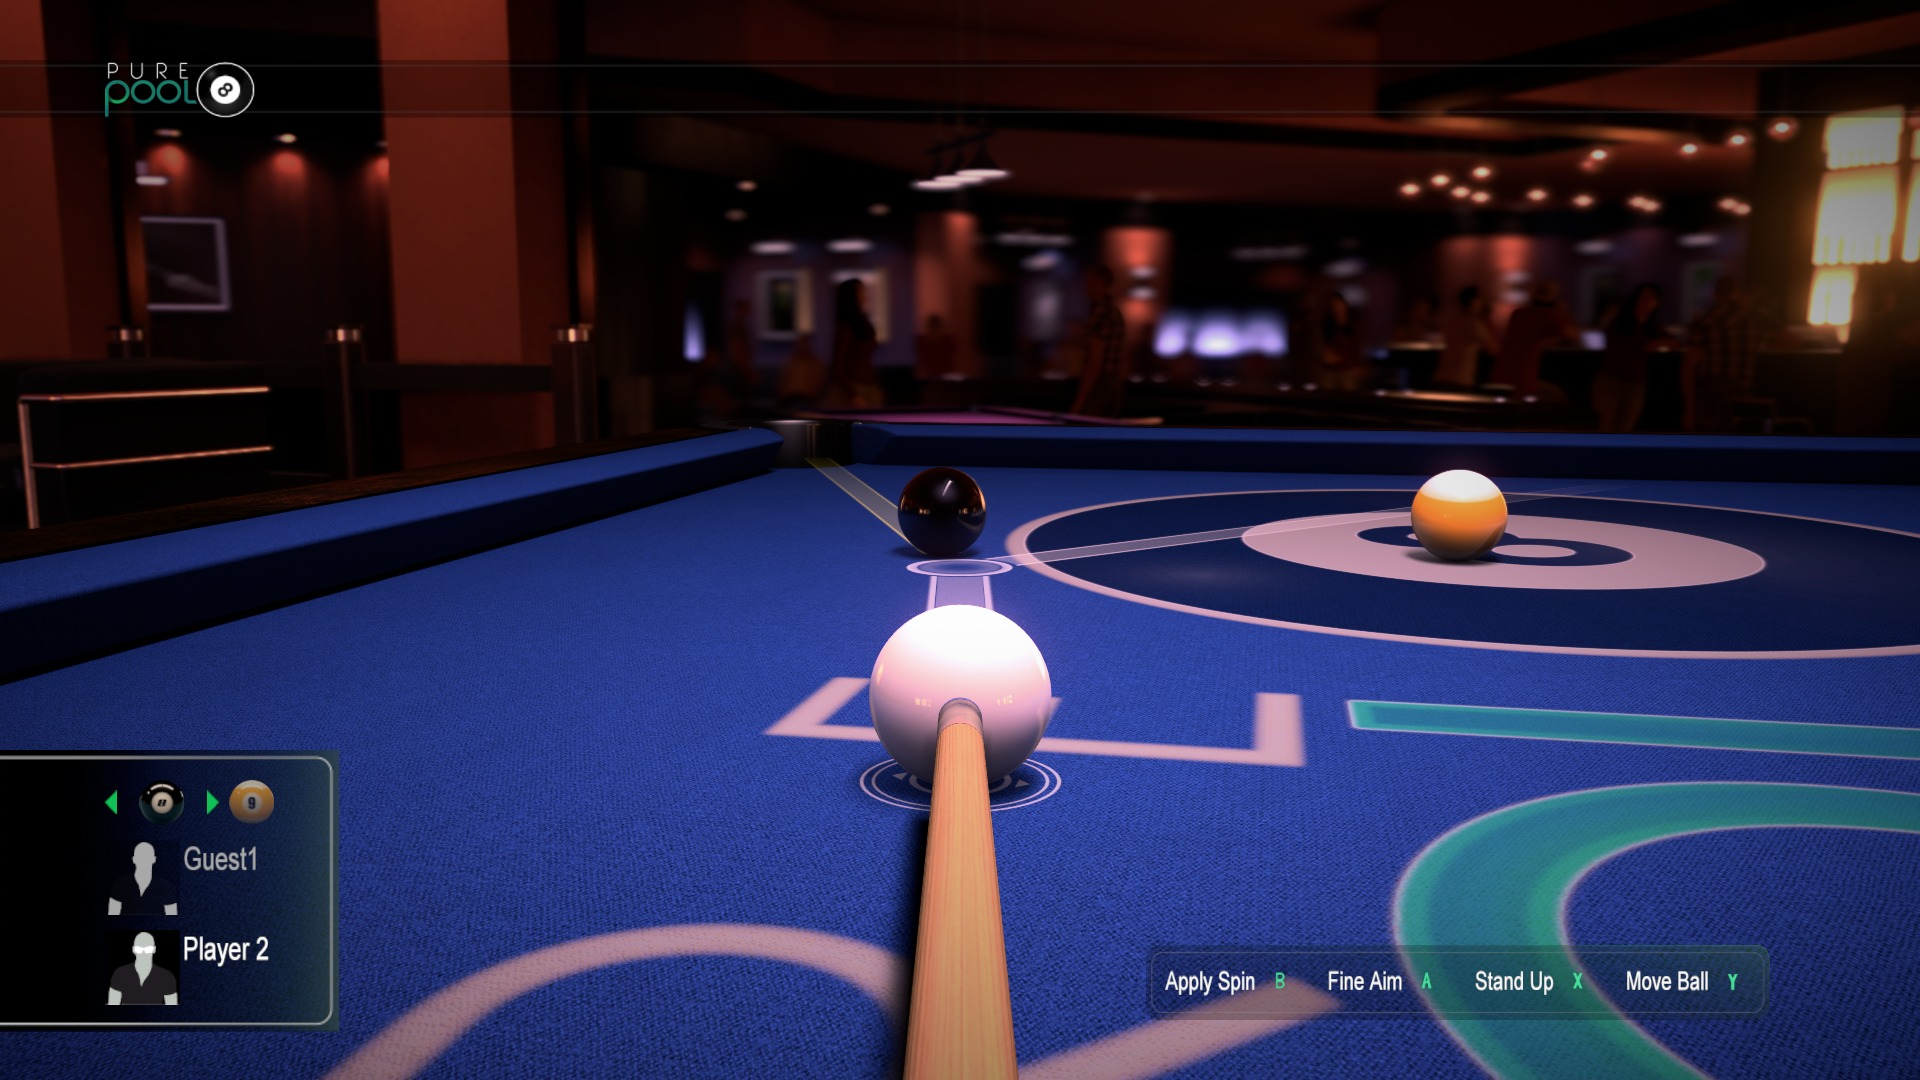 Pure Pool Xbox One screenshot (4)